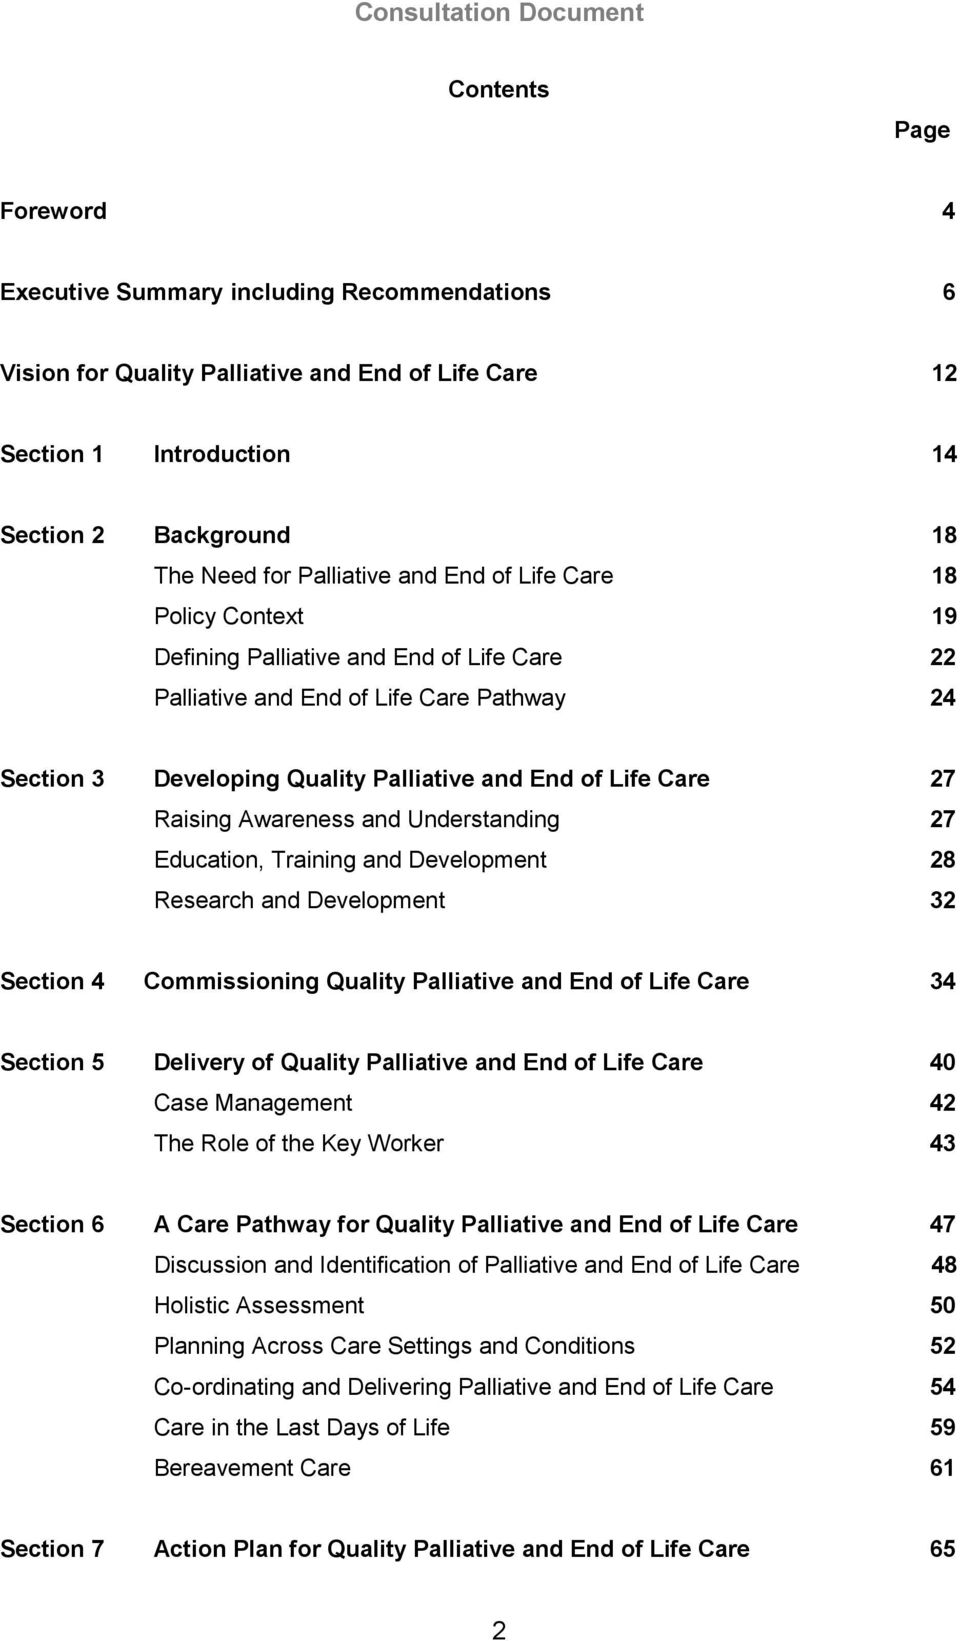 Raising Awareness and Understanding 27 Education, Training and Development 28 Research and Development 32 Section 4 Commissioning Quality Palliative and End of Life Care 34 Section 5 Delivery of